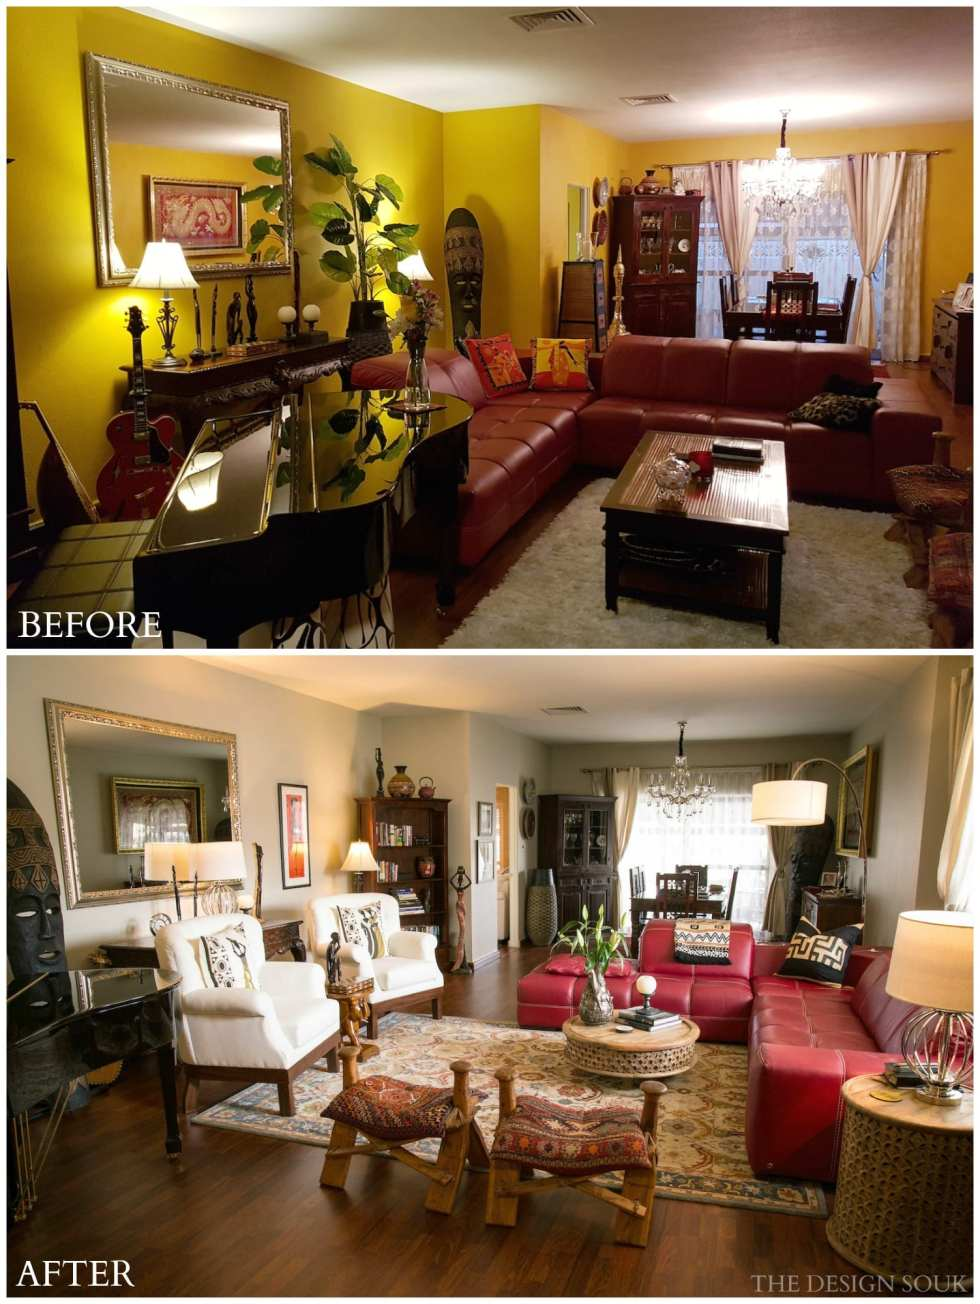 A Living Room Makeover BEFORE & AFTER   THE DESIGN SOUK   www.thedesignsouk.com